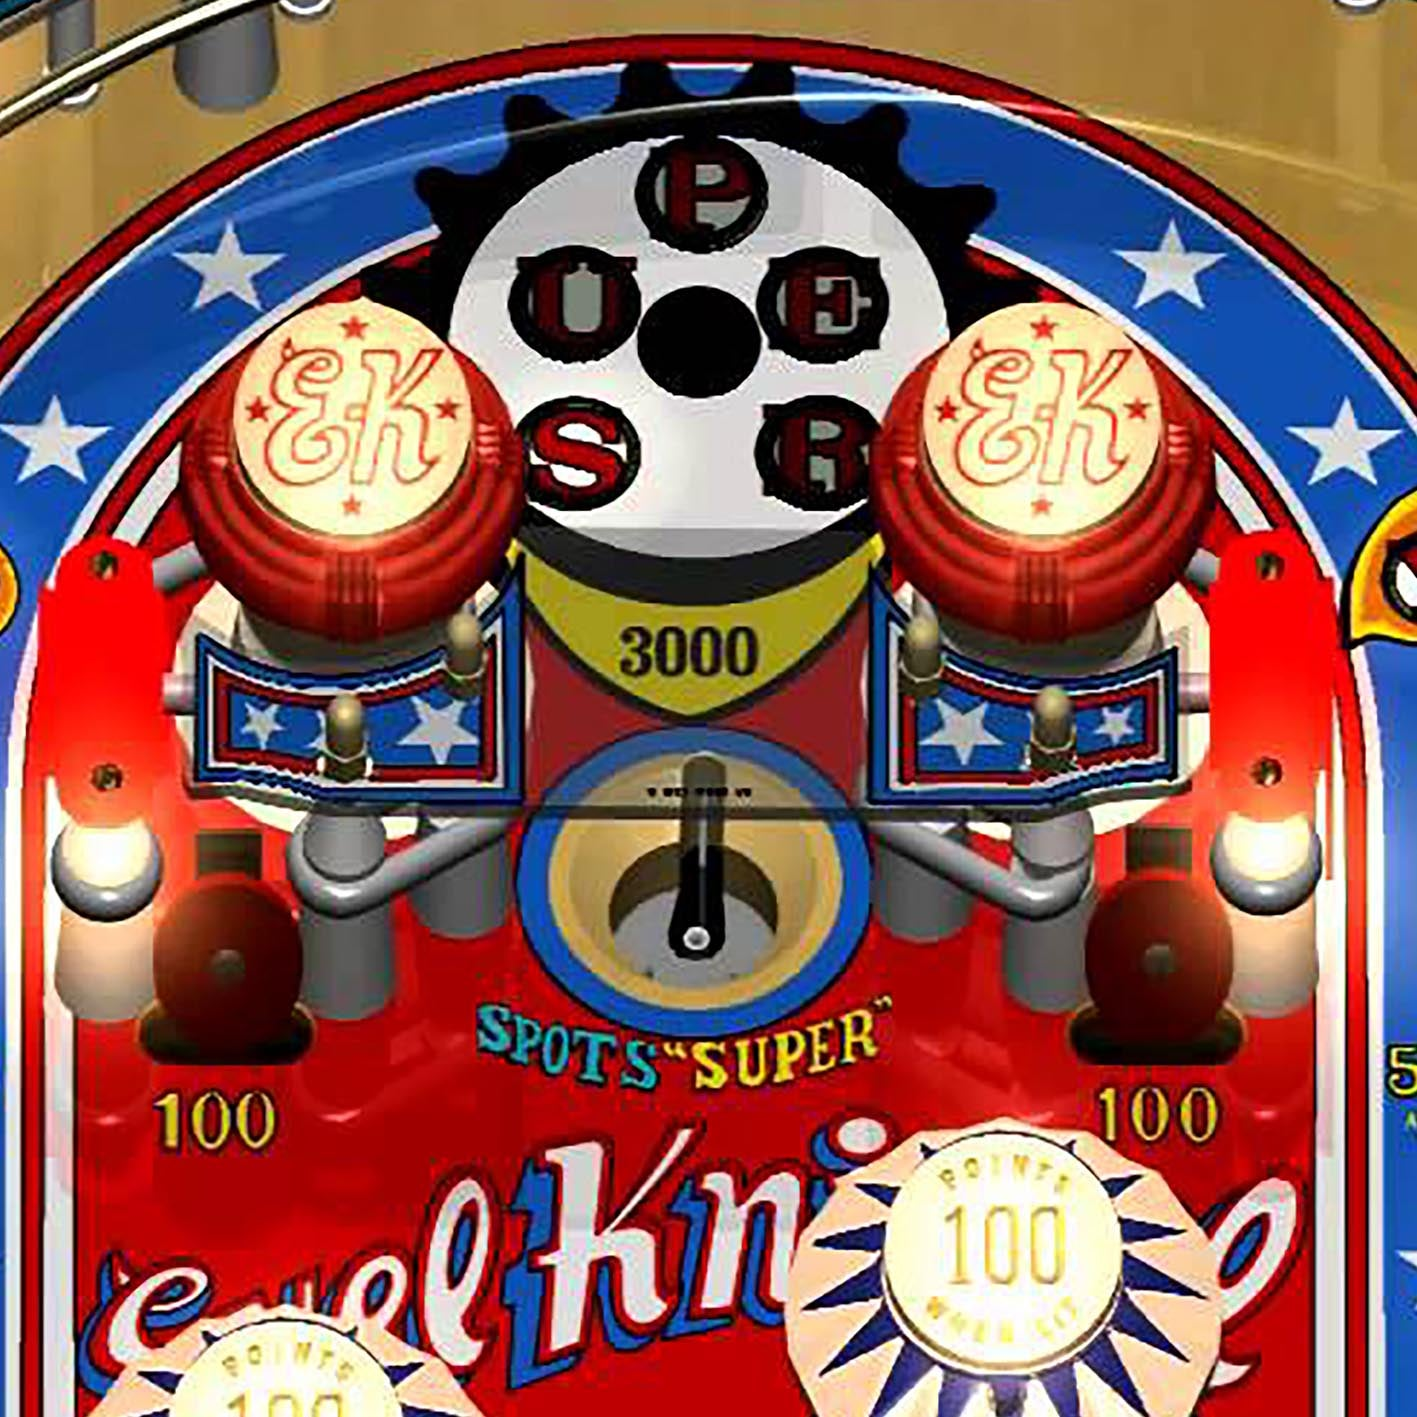 Evel Knievel Pinball Machine 'Coming Soon'